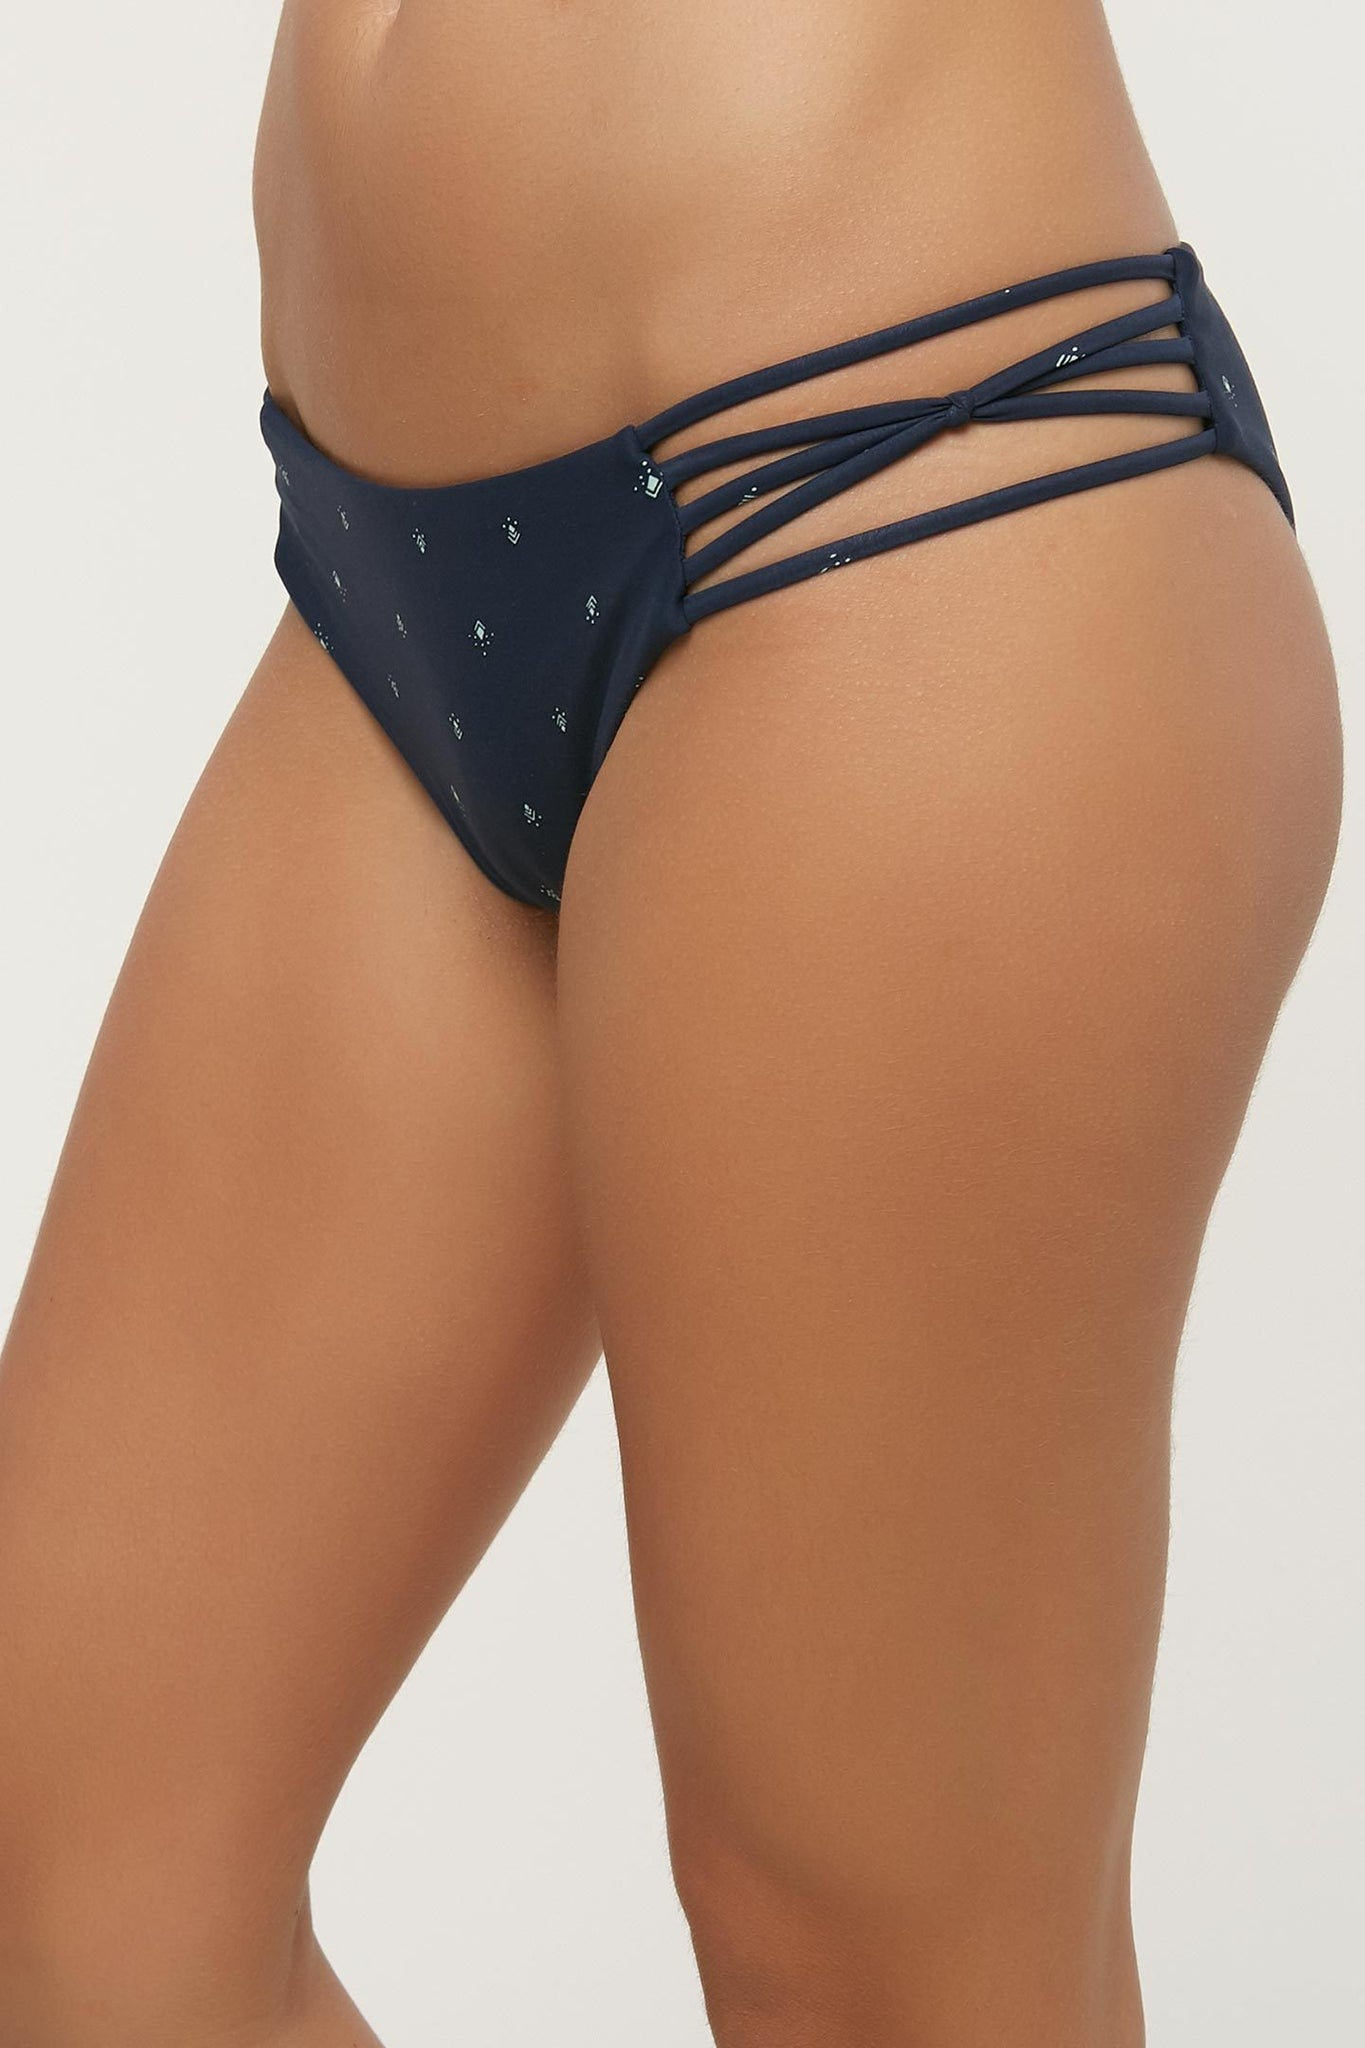 Tribal Tracker Strappy Hipster Bottoms - Navy | O'Neill